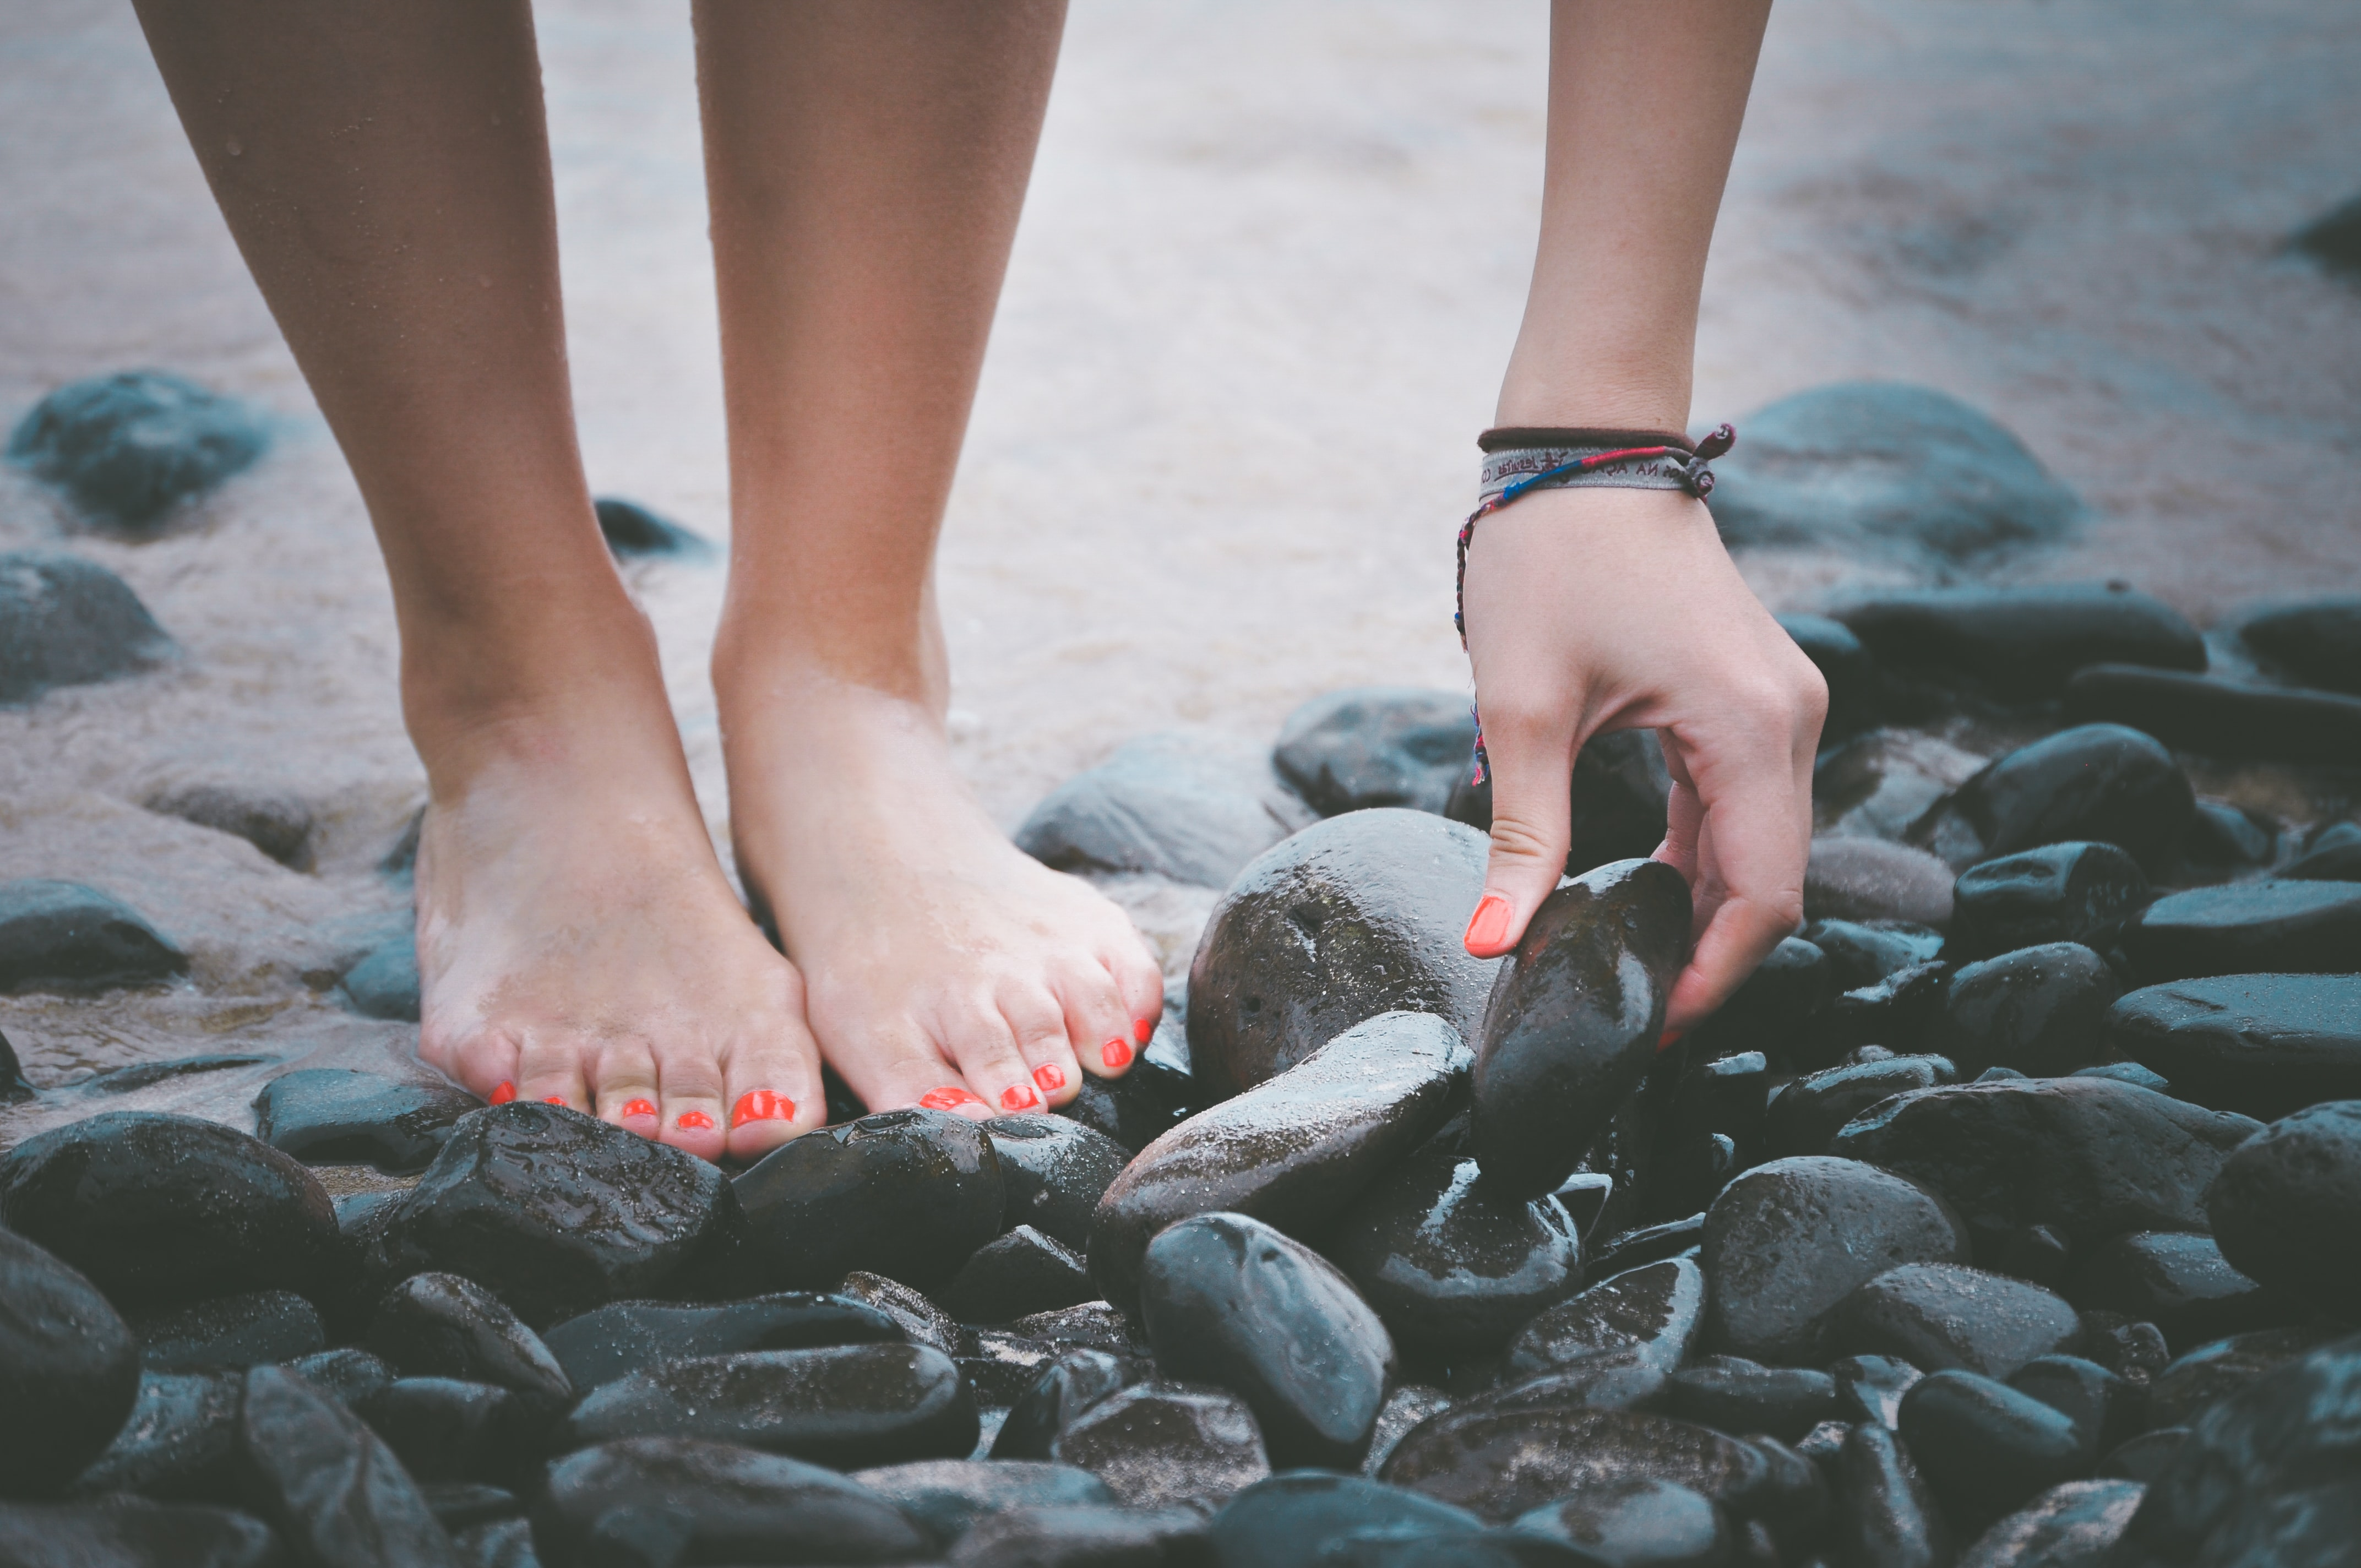 What's the difference between hammer toes and claw toes?